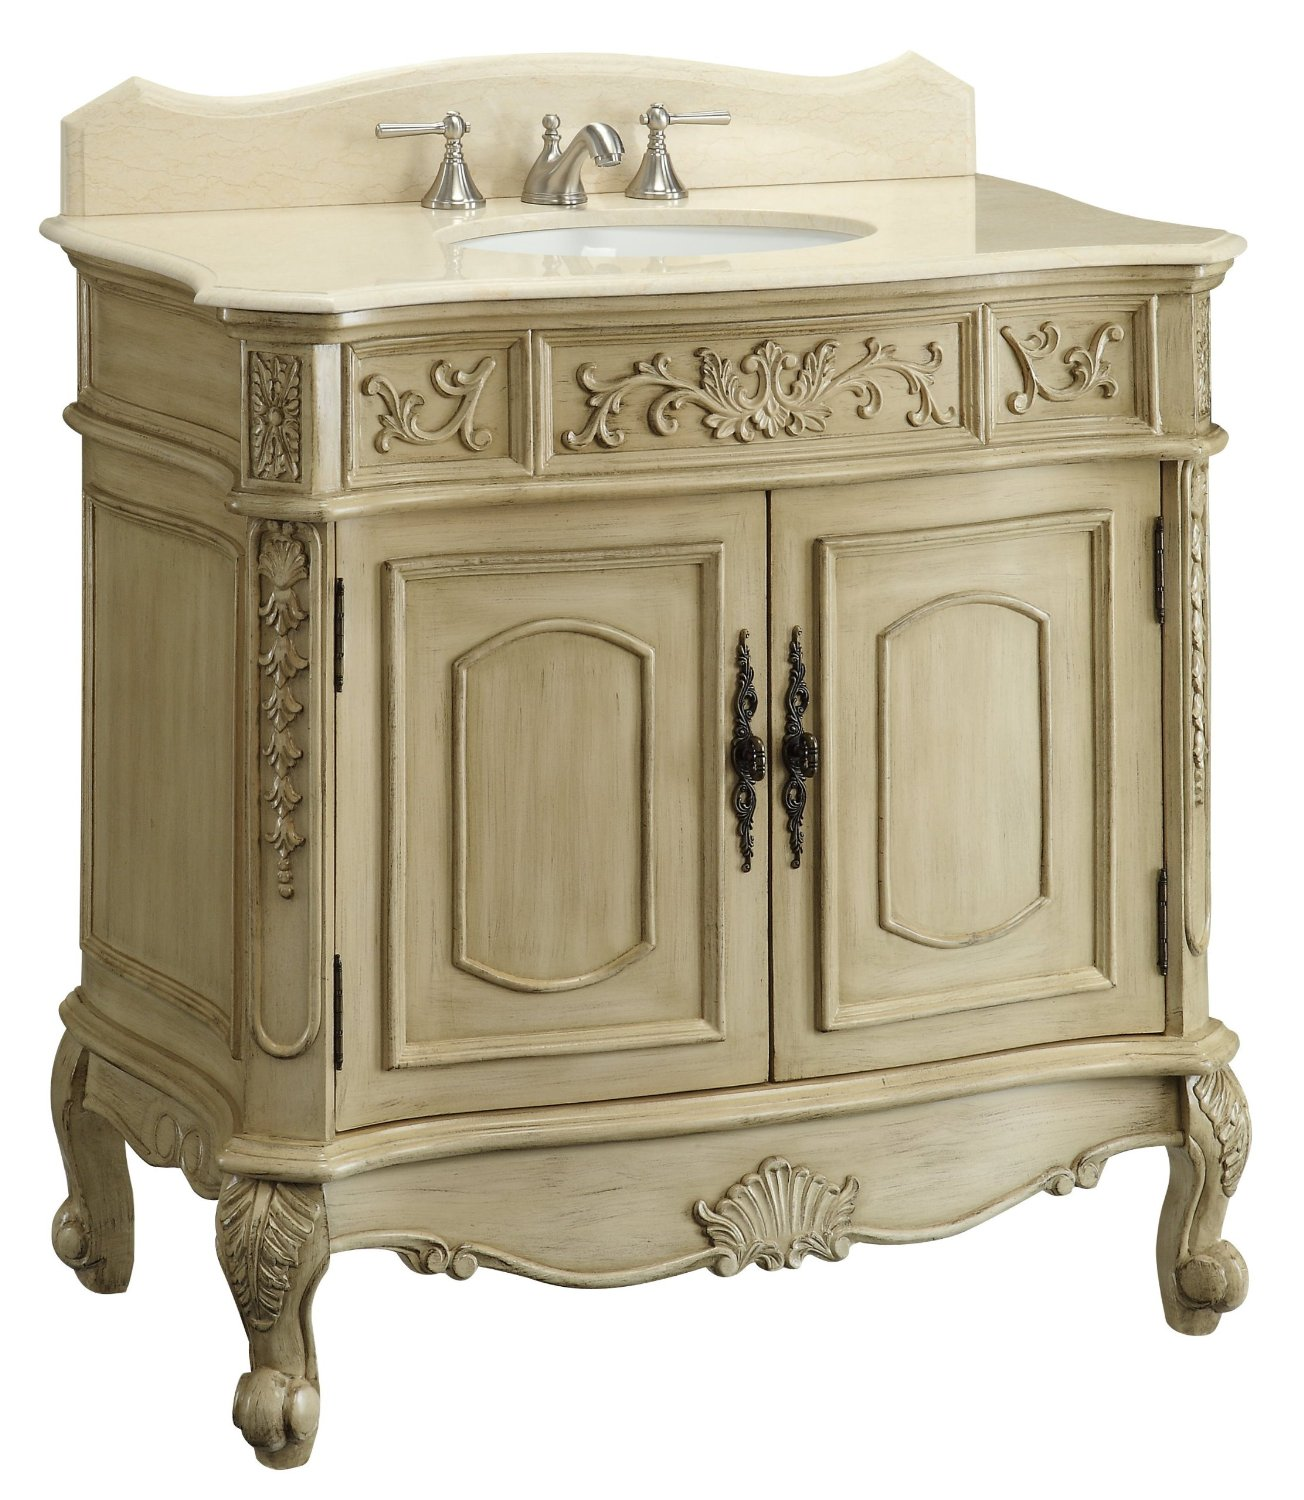 Adelina 37 inch Antique White Bathroom Vanity - Adelina 37 Inch Unique Antique Bathroom Vanity, White Marble Counter Top